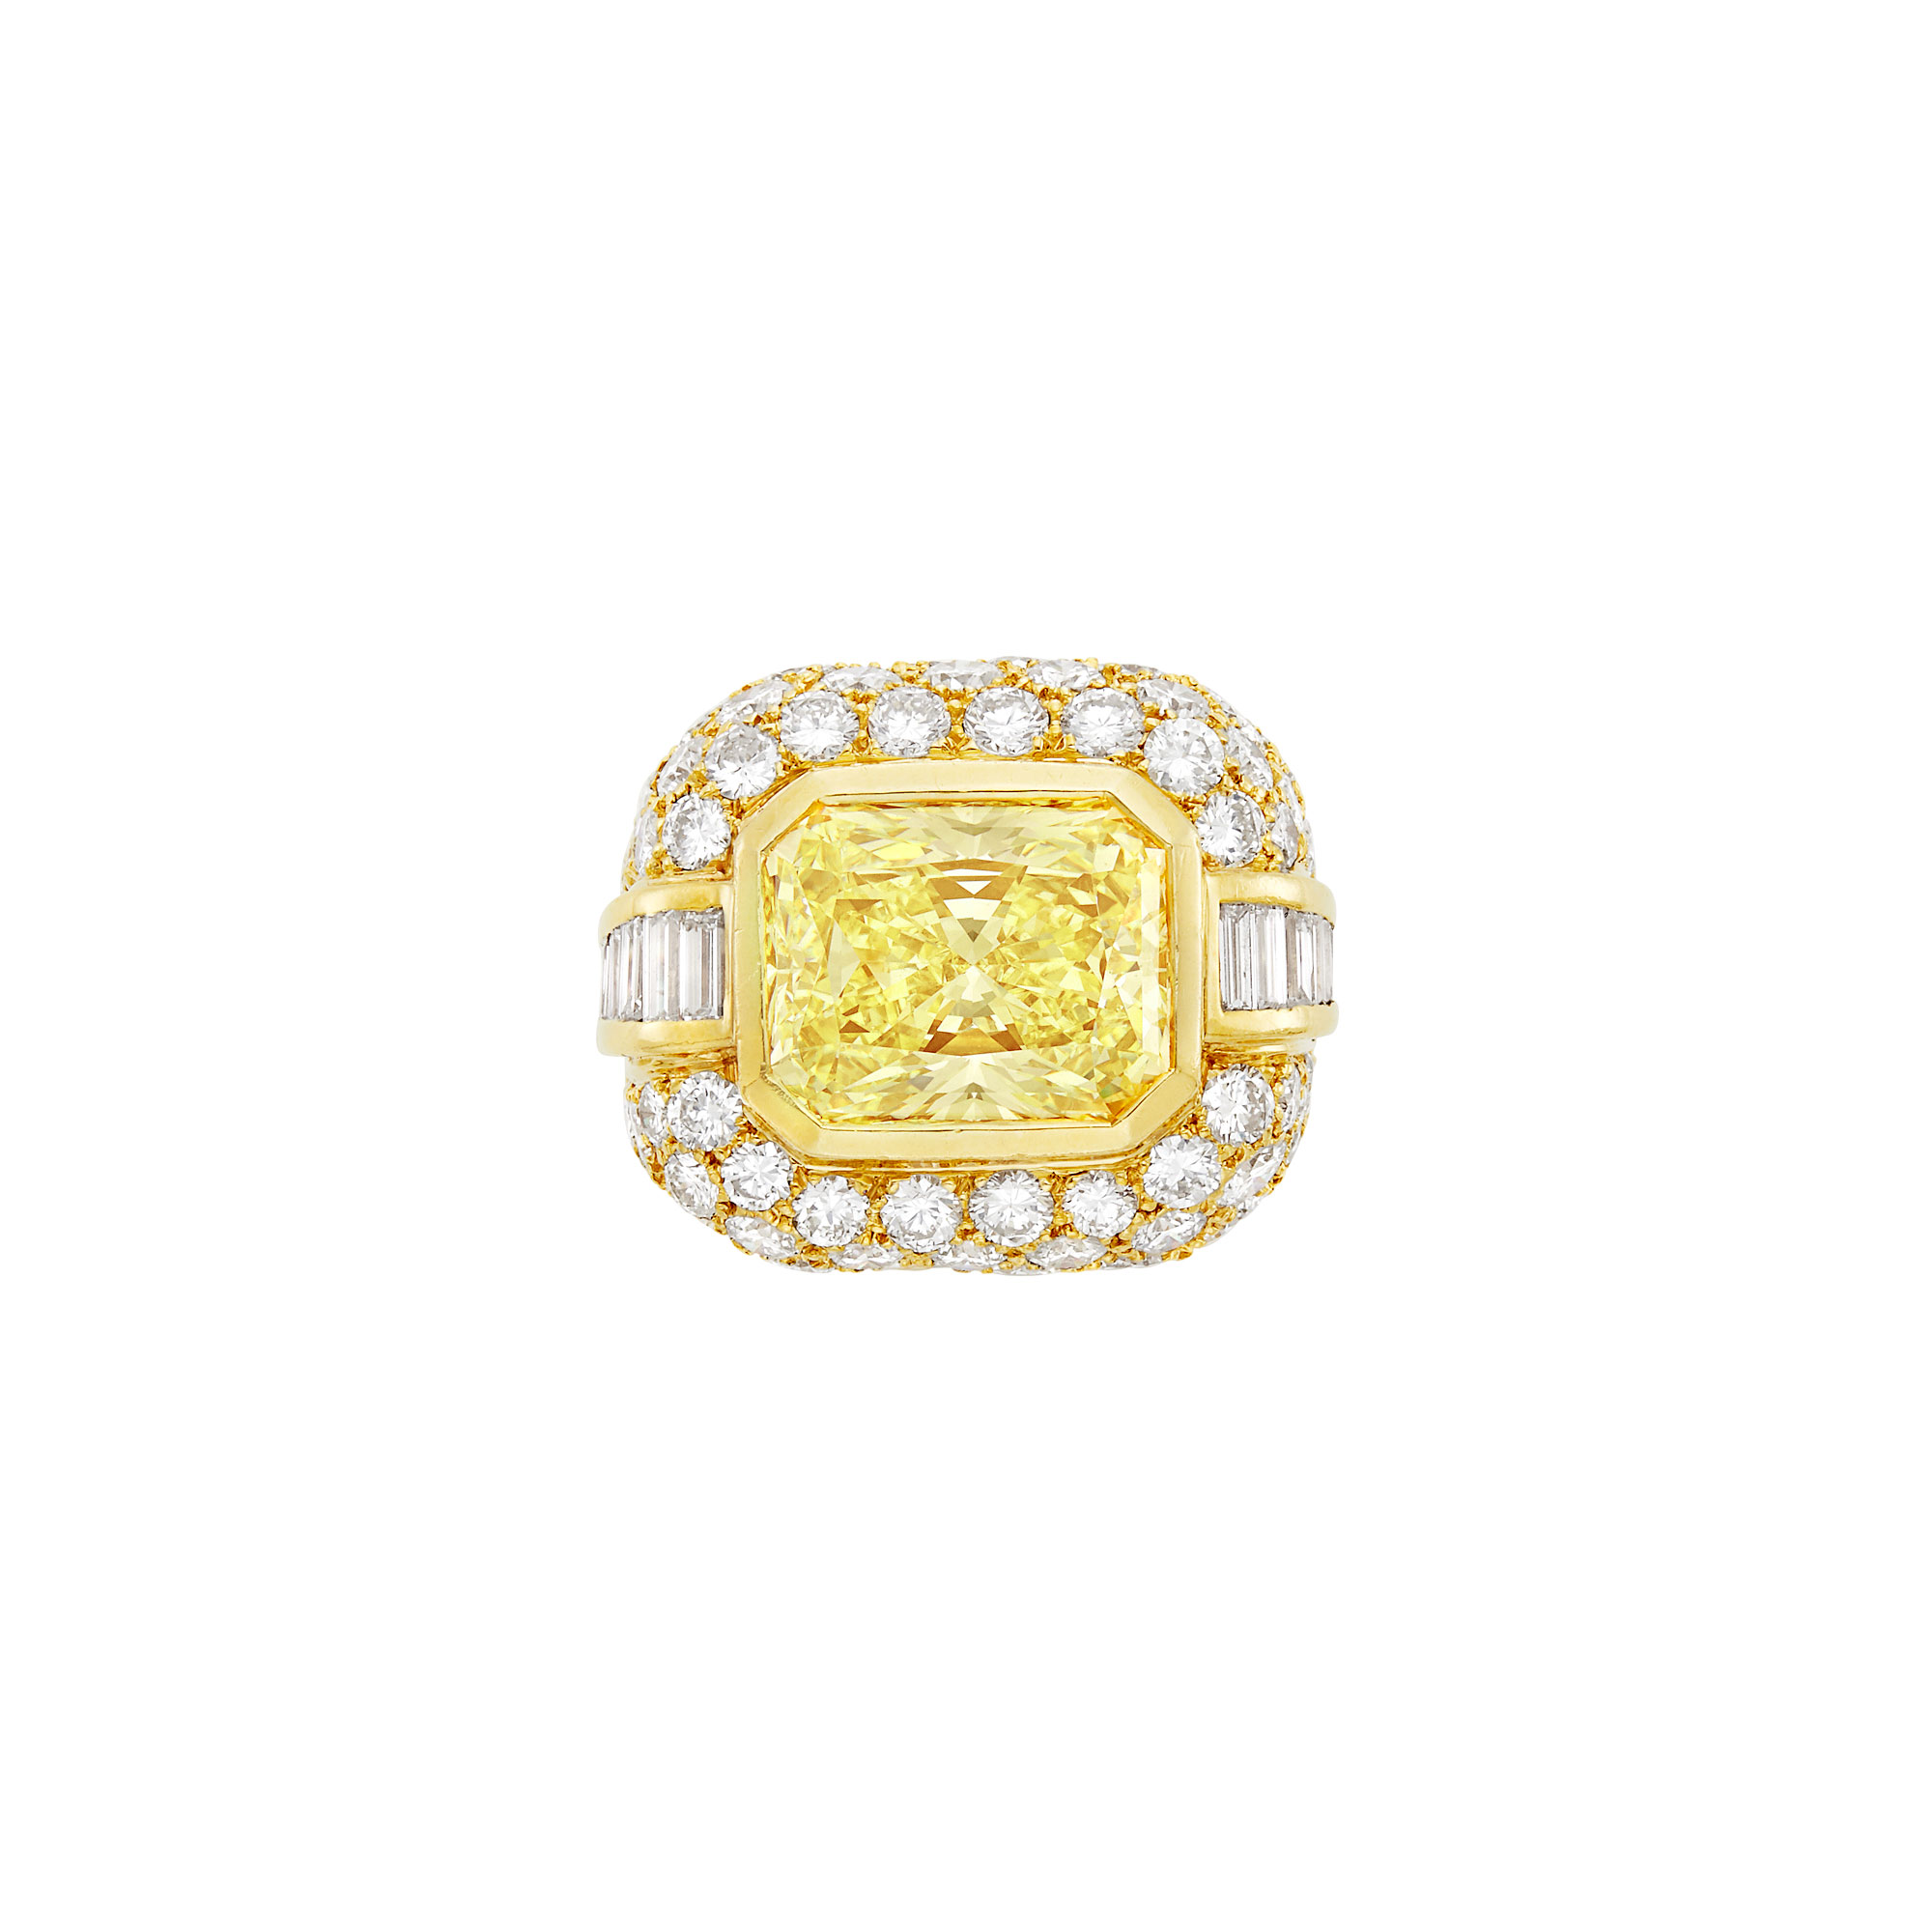 Lot image - Gold, Yellow Diamond and Diamond Ring